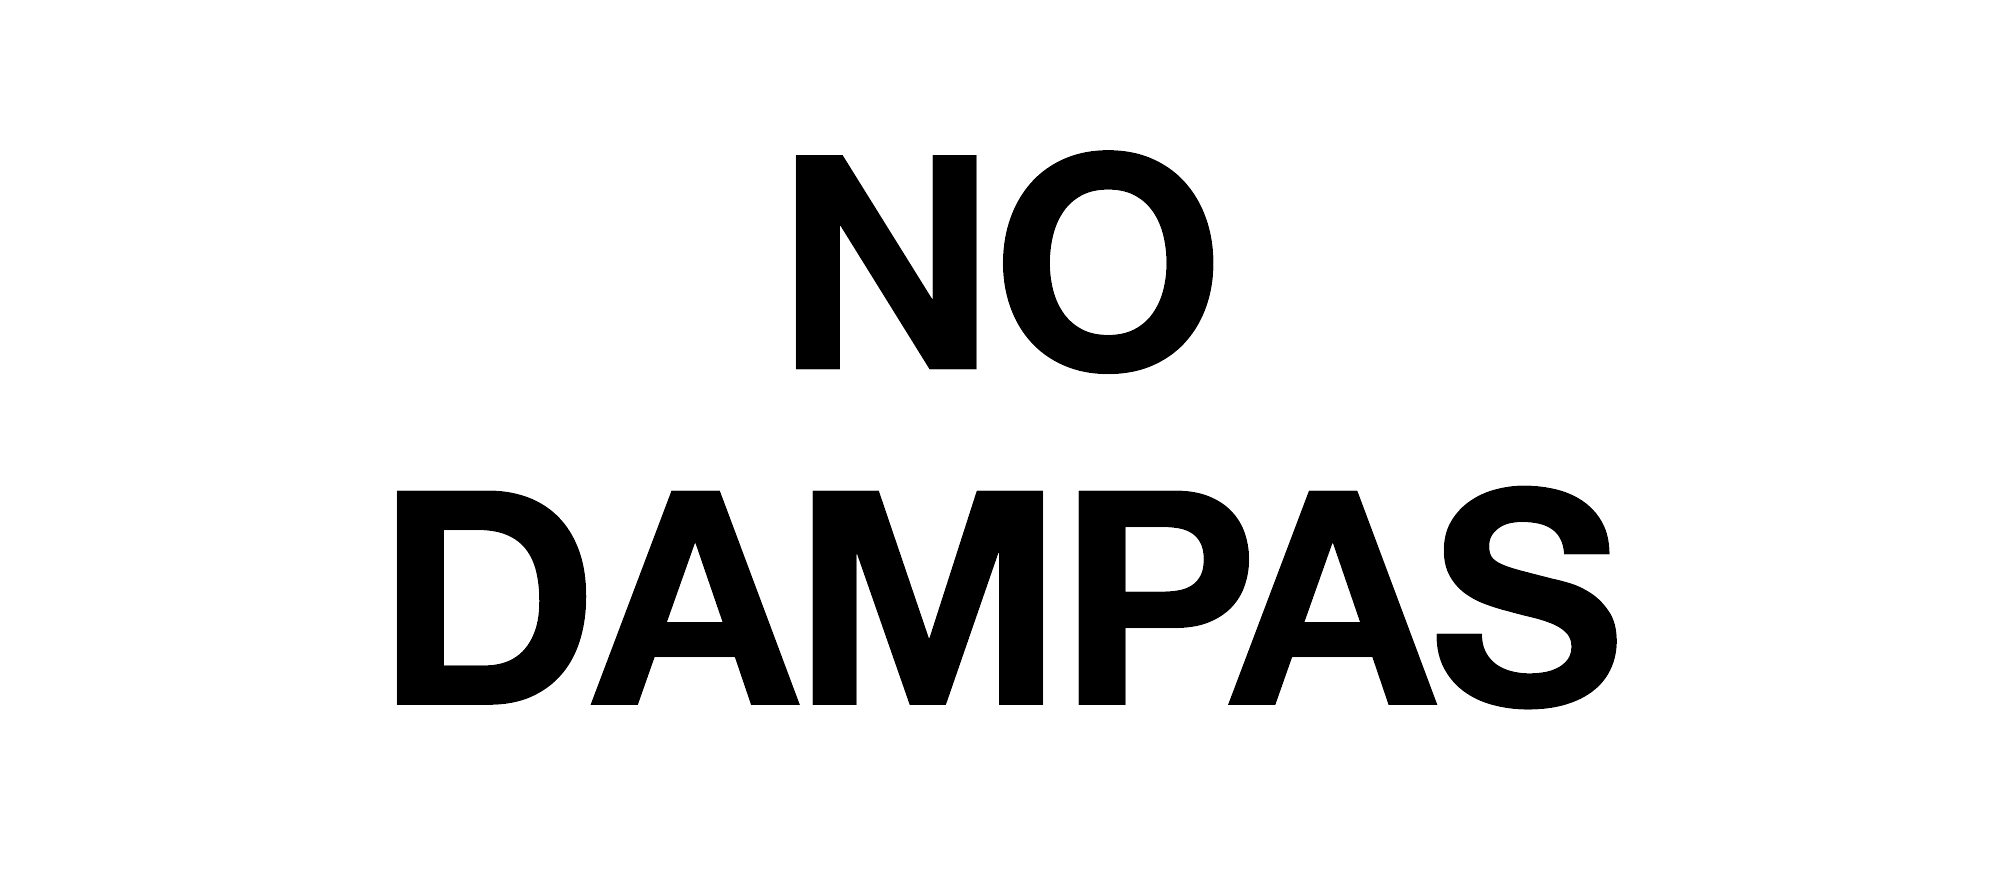 NO DAMPA's Thanks Attribute Thumbnail